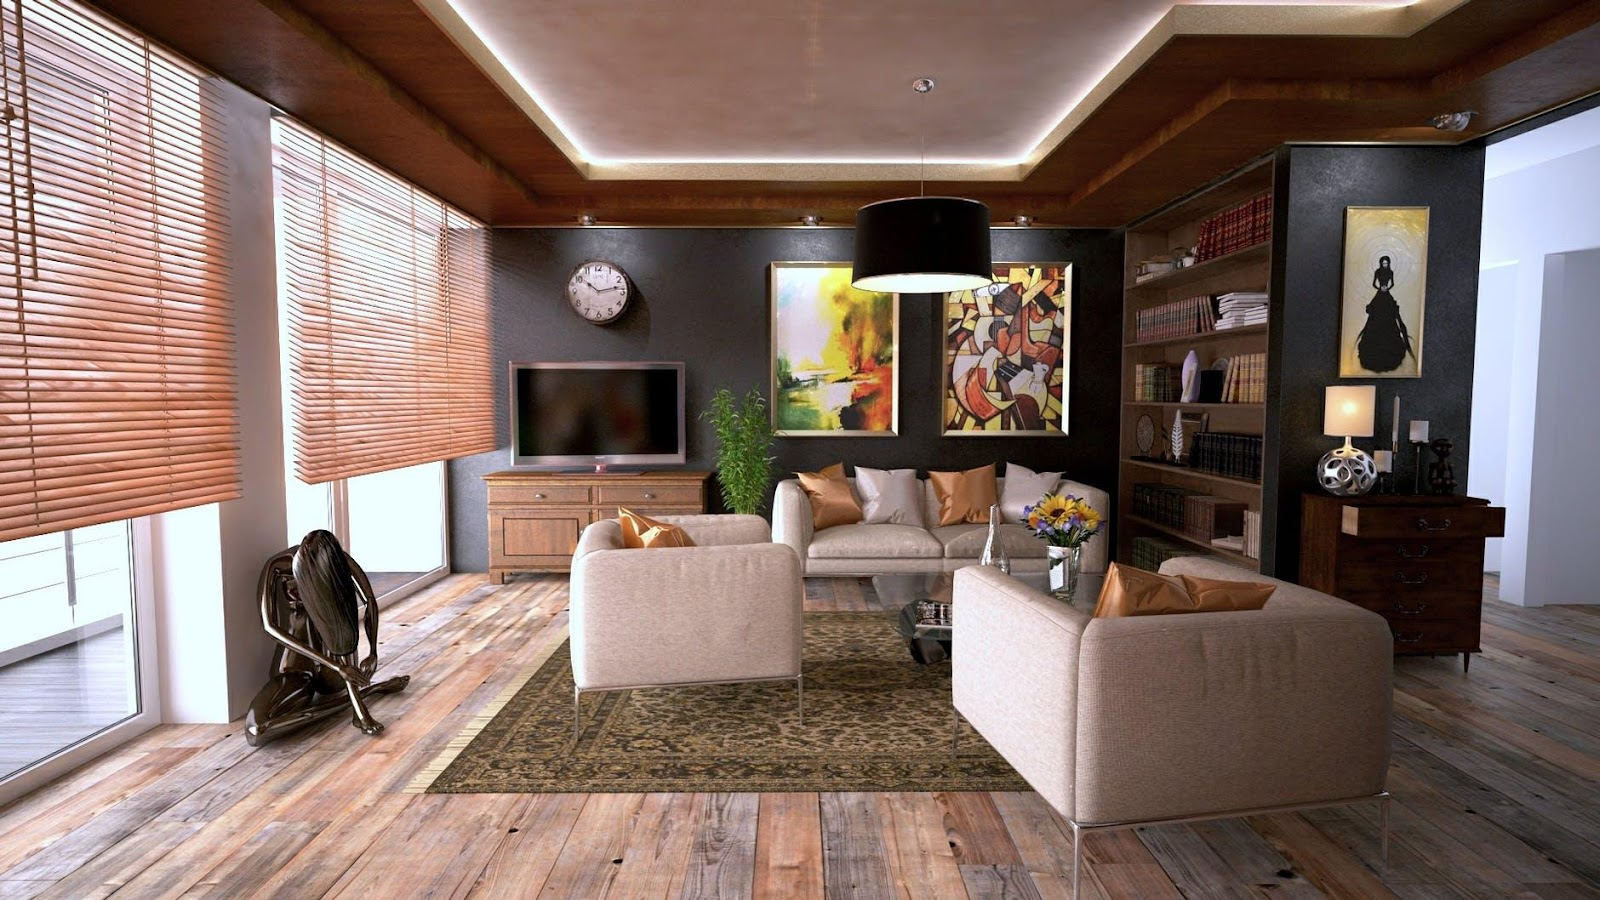 Things to consider when buying luxury rugs